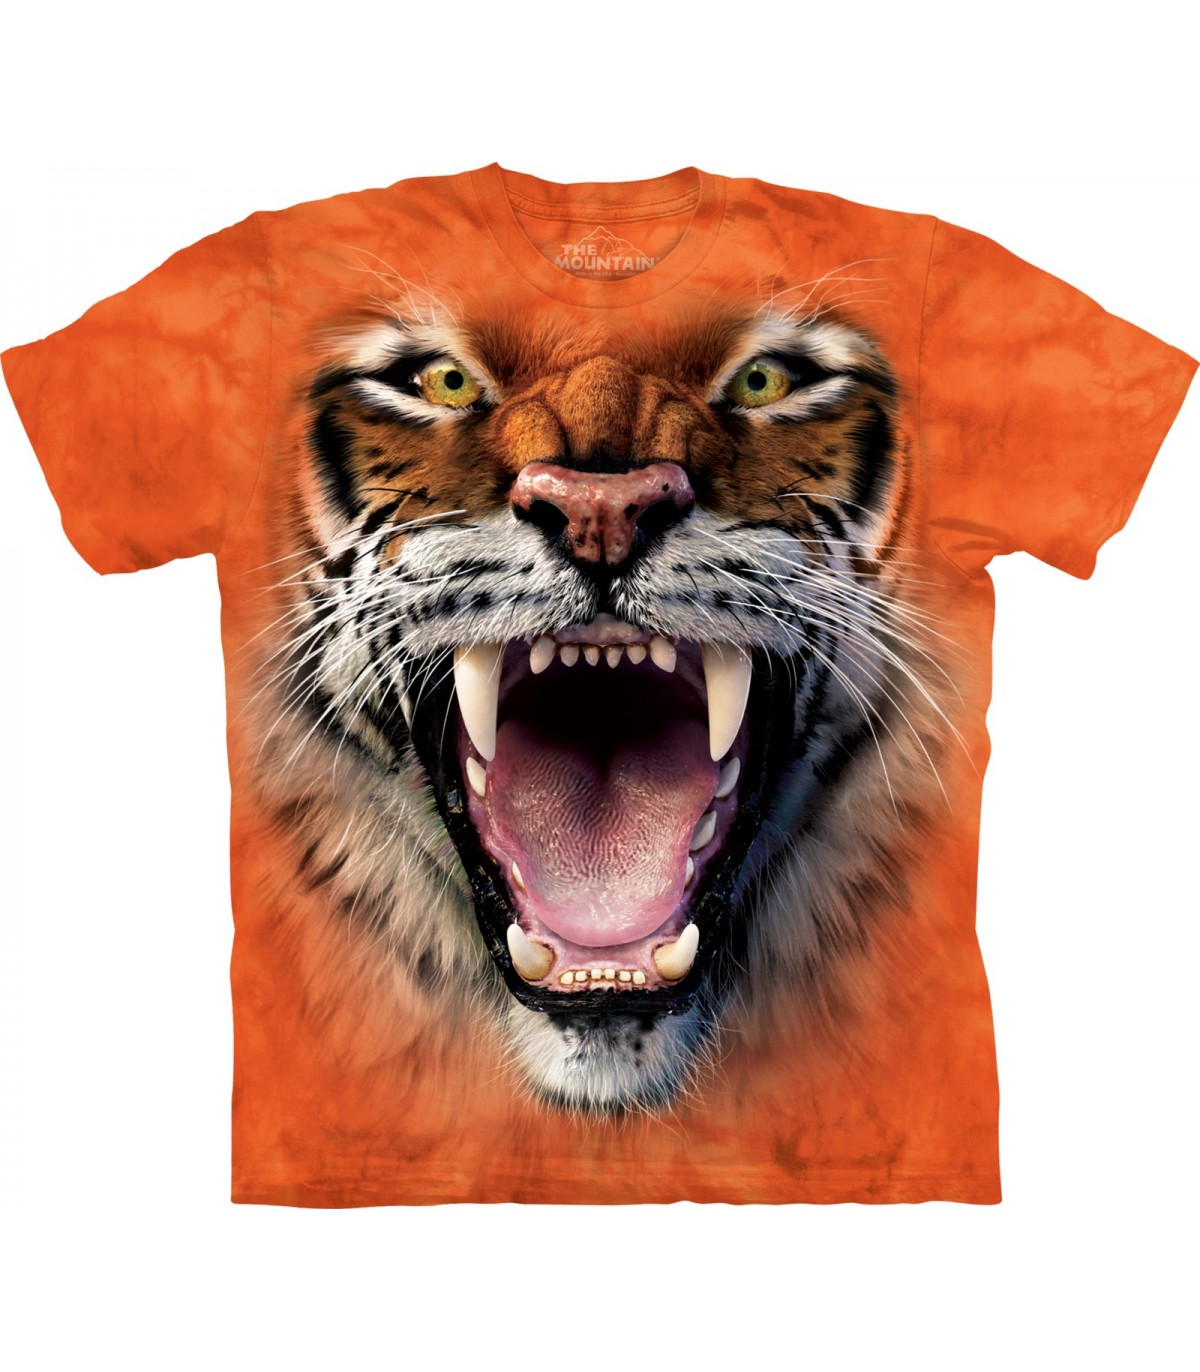 New The Mountain Enchanted Tiger T Shirt